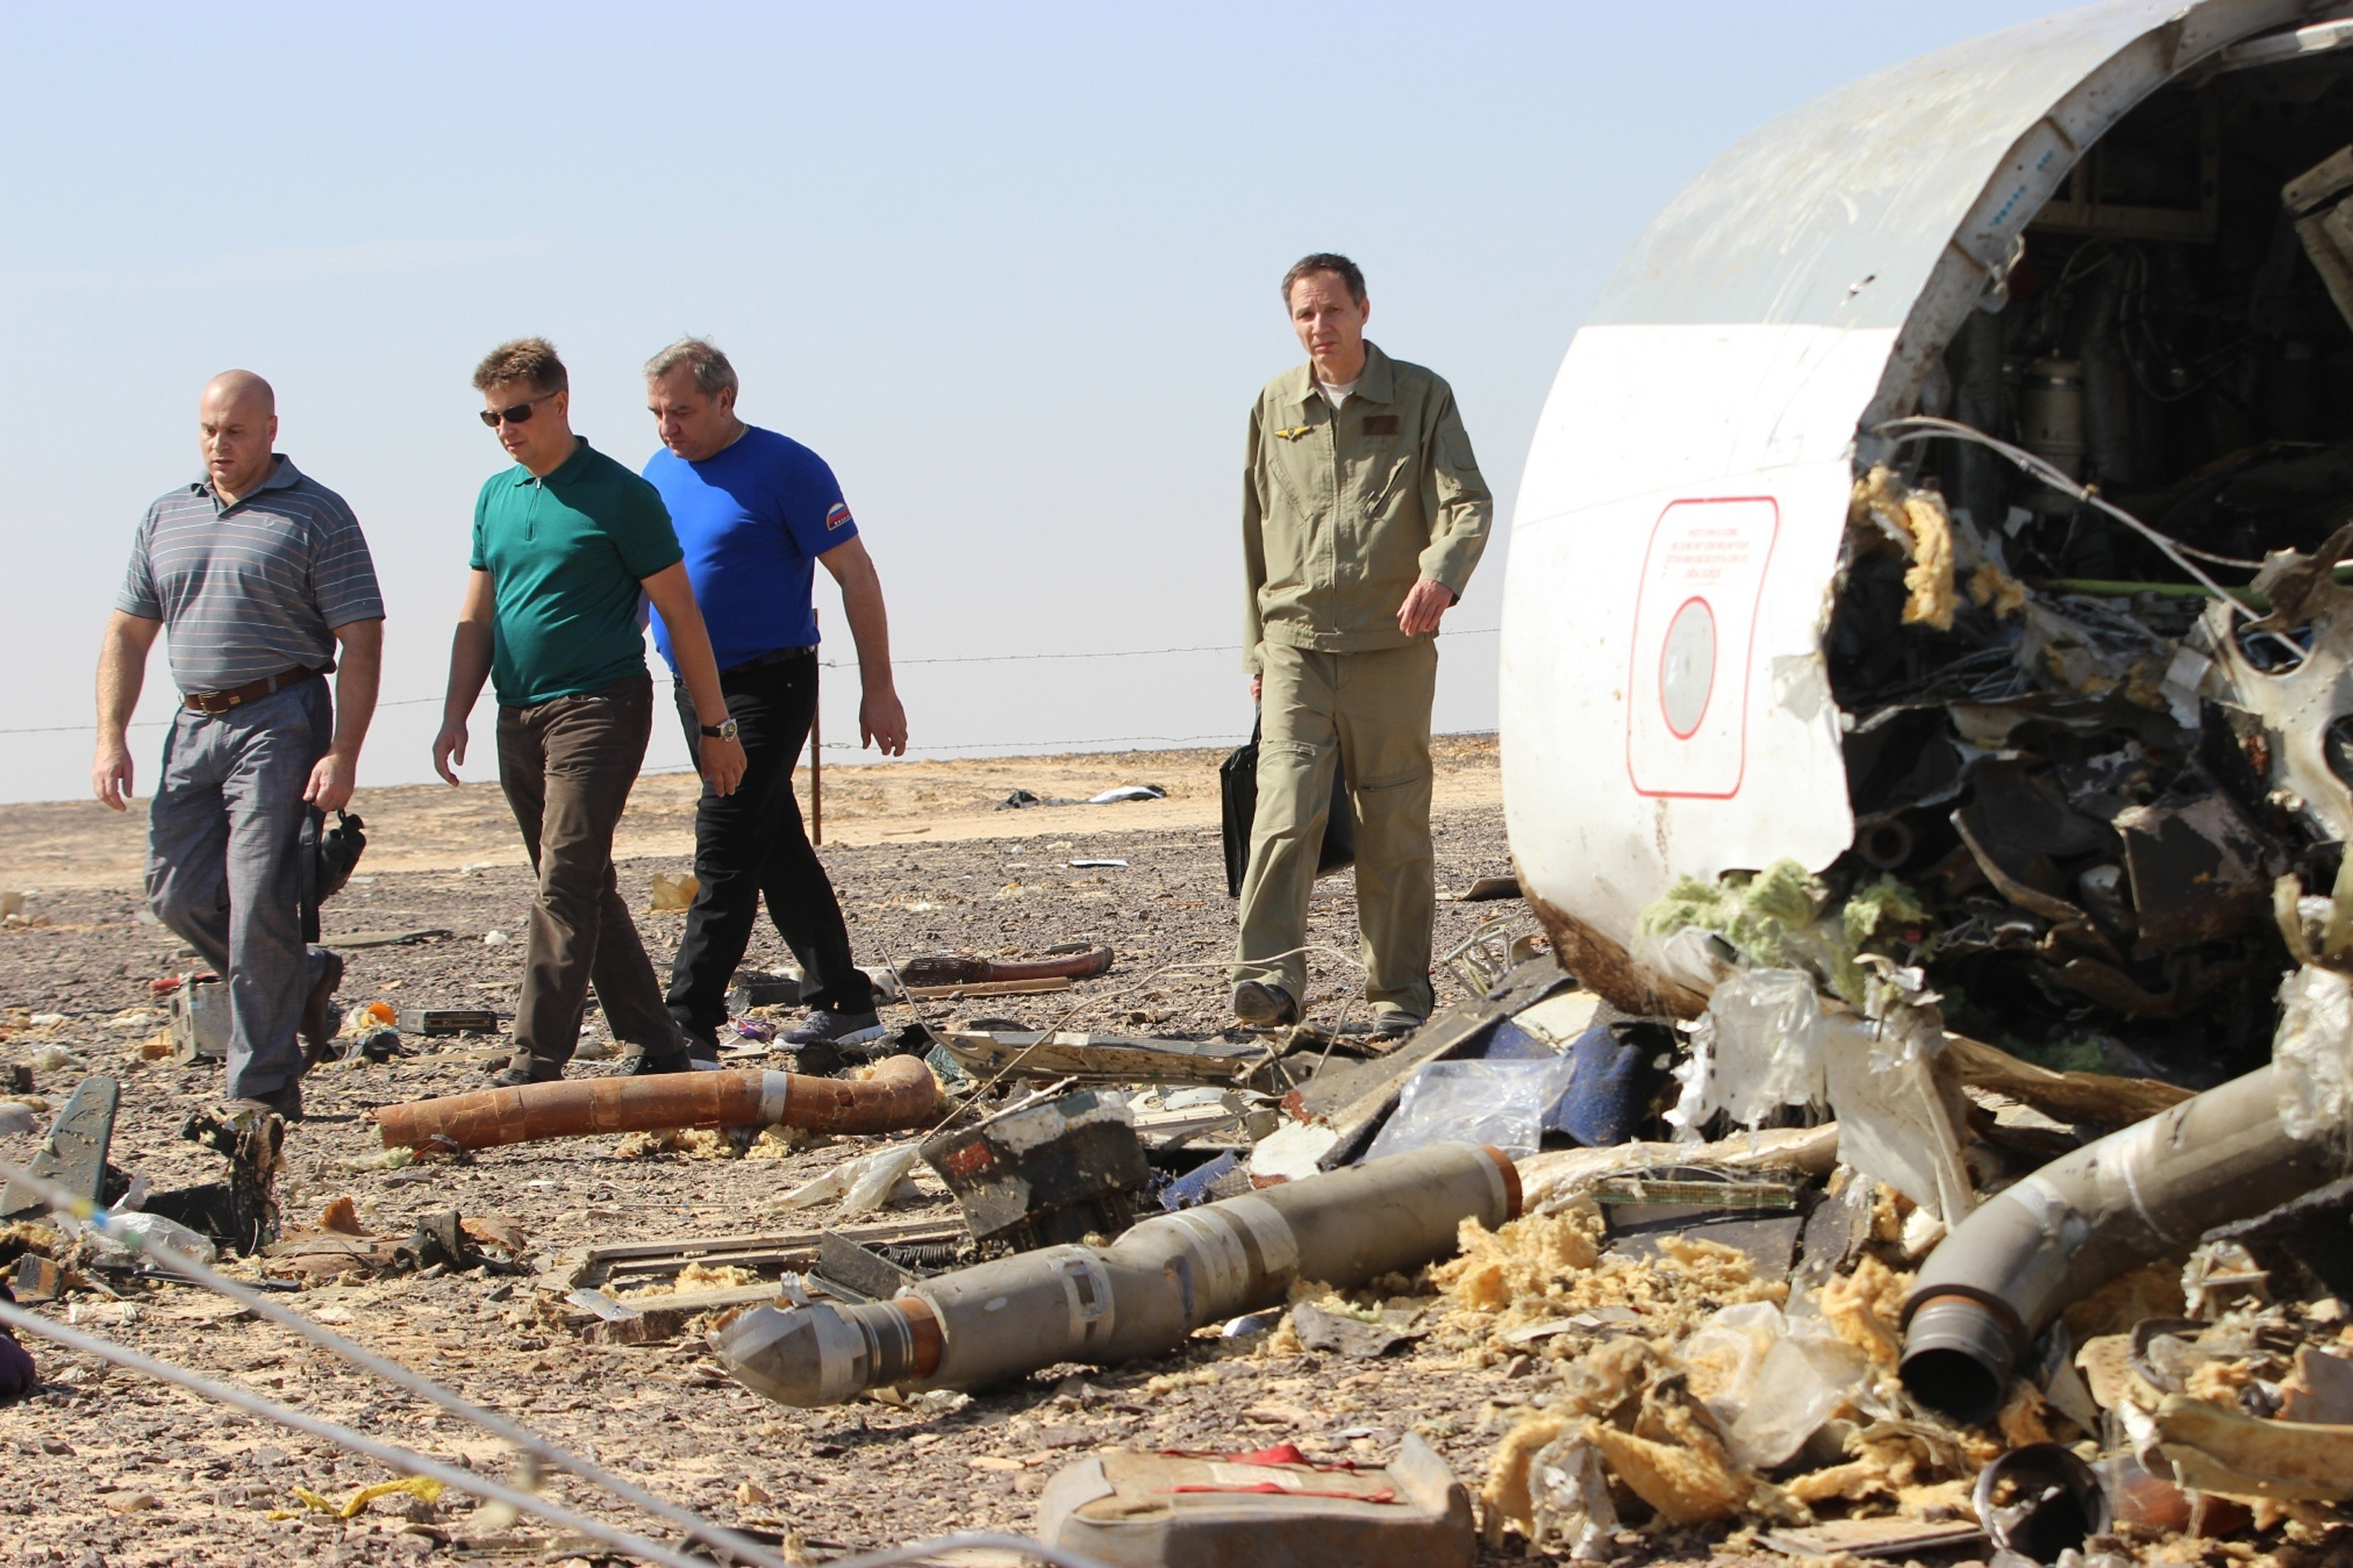 Russian Minister of Emergency Situations Vladimir Puchkov (3rd L) inspect the crash site of Russian Airliner in Suez, Egypt on November 01, 2015.